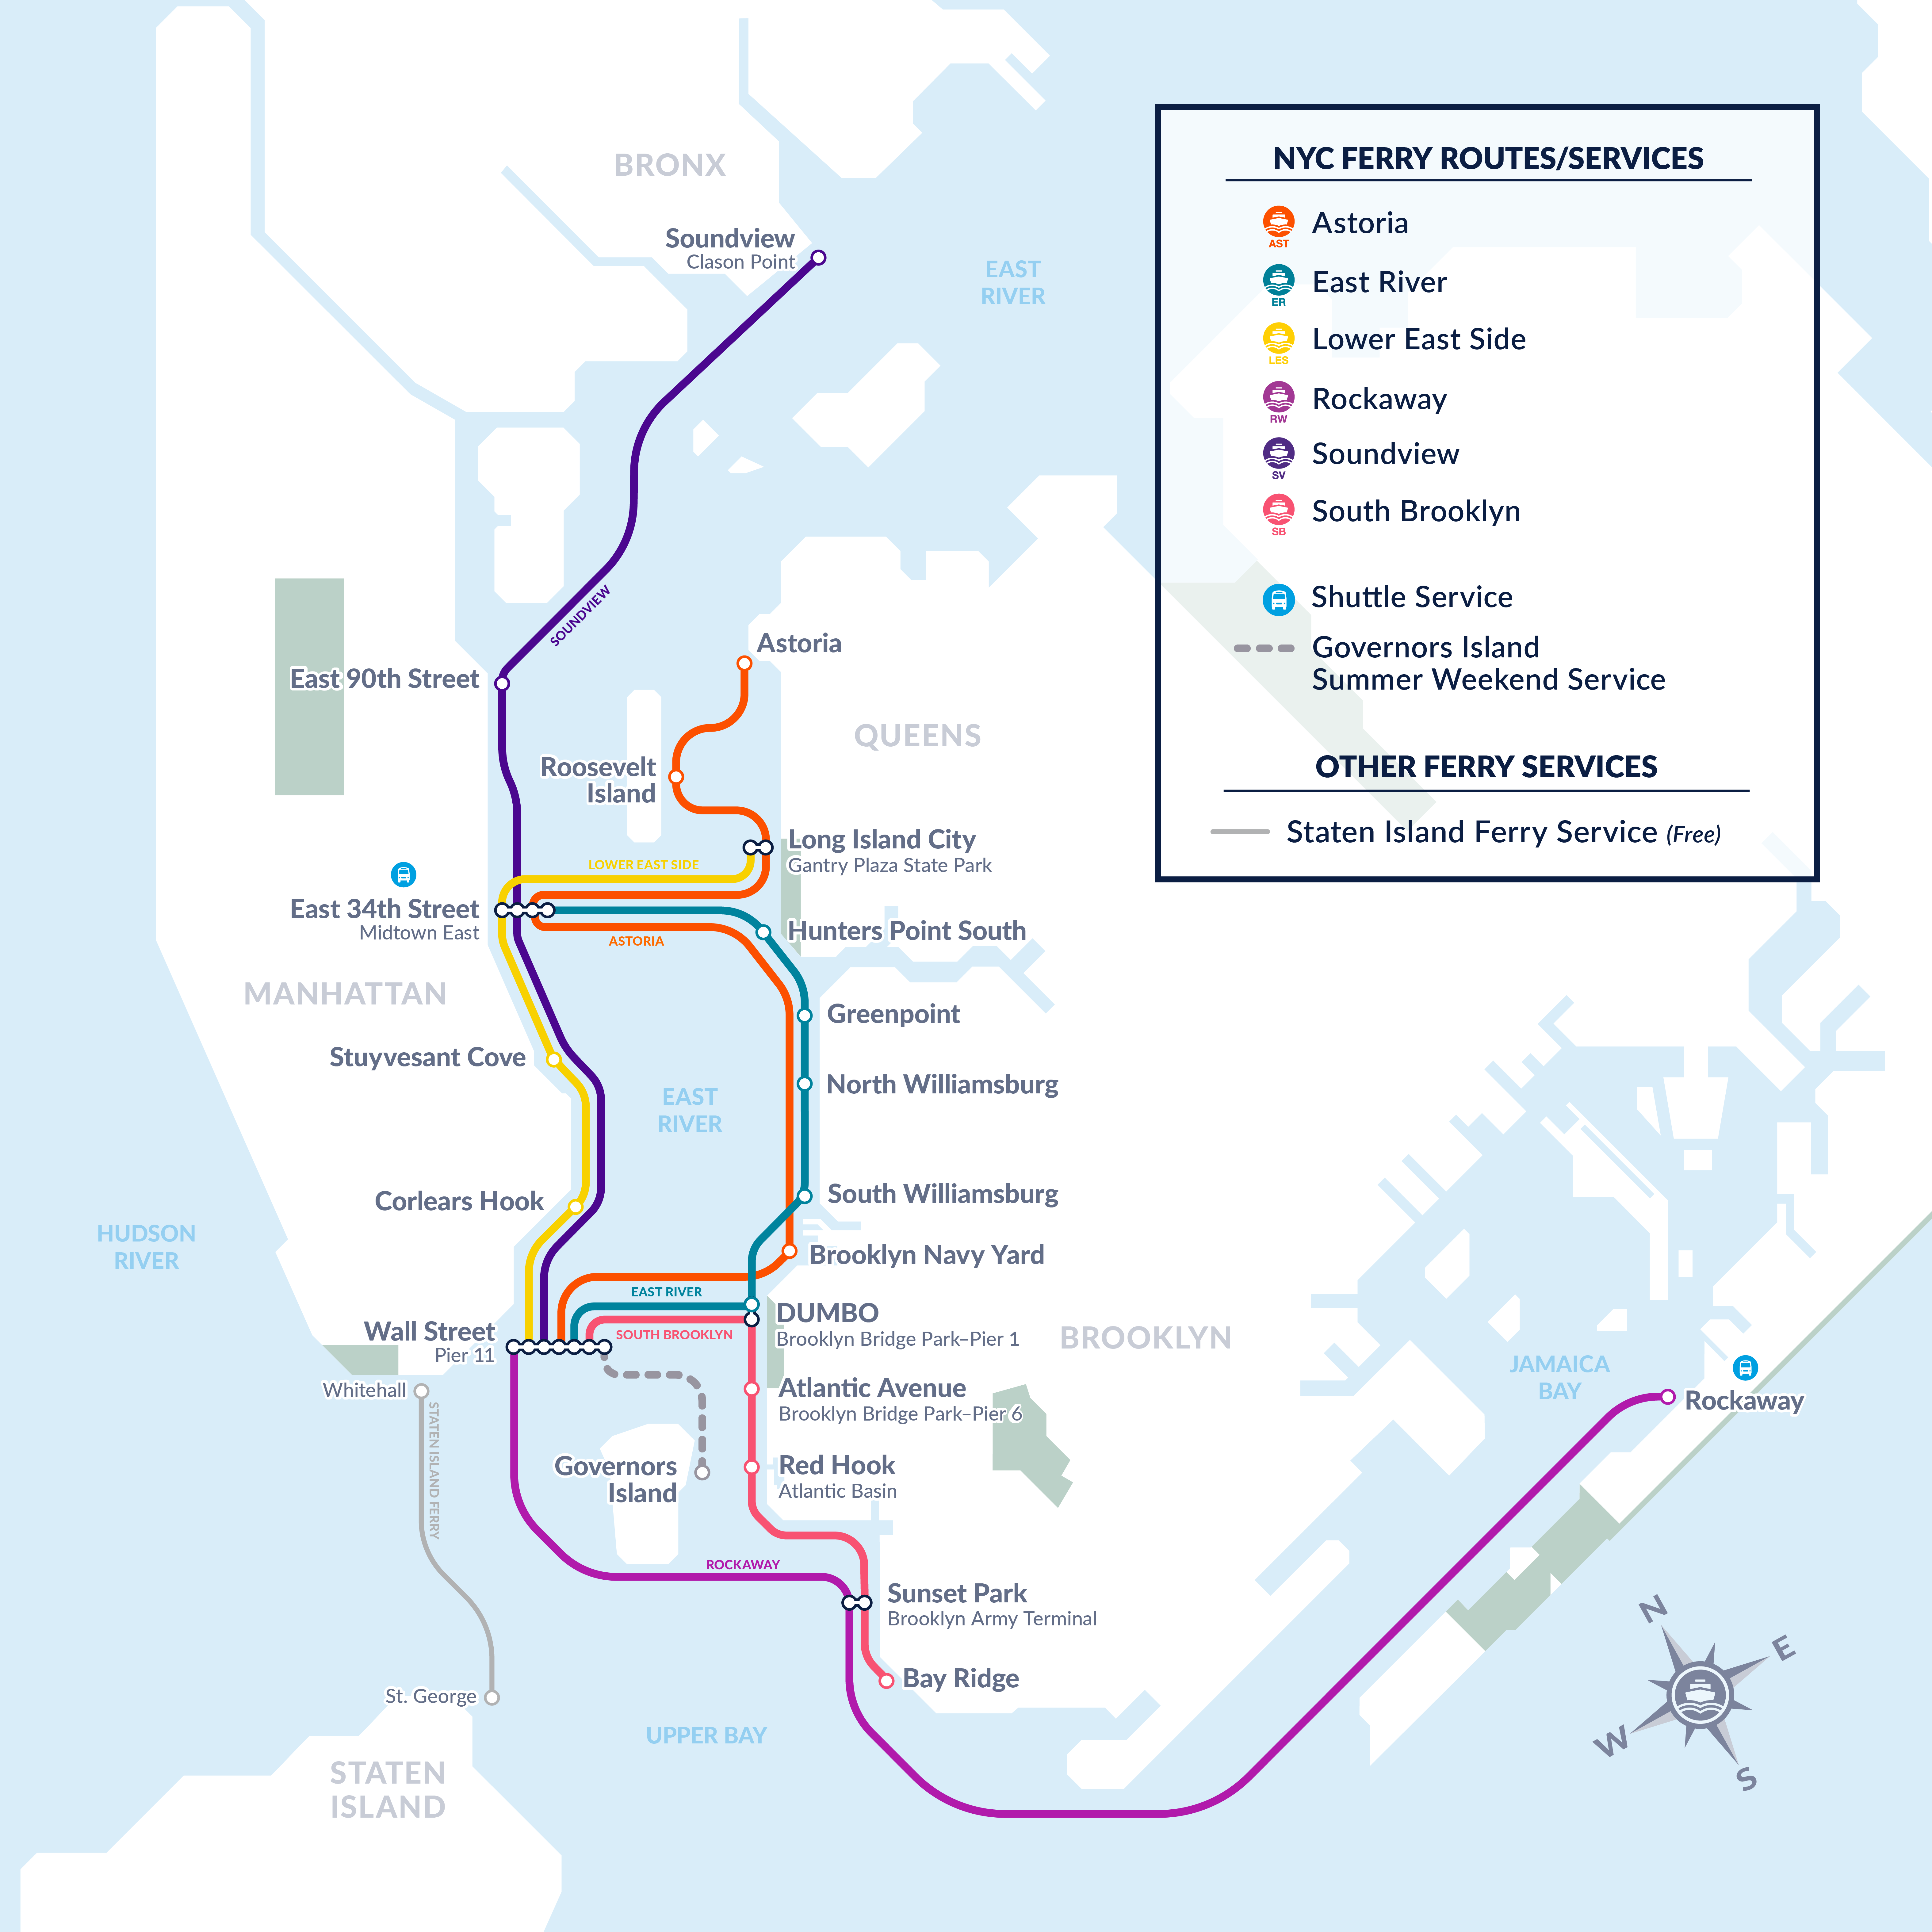 New York NYC Ferry Routes & Schedules